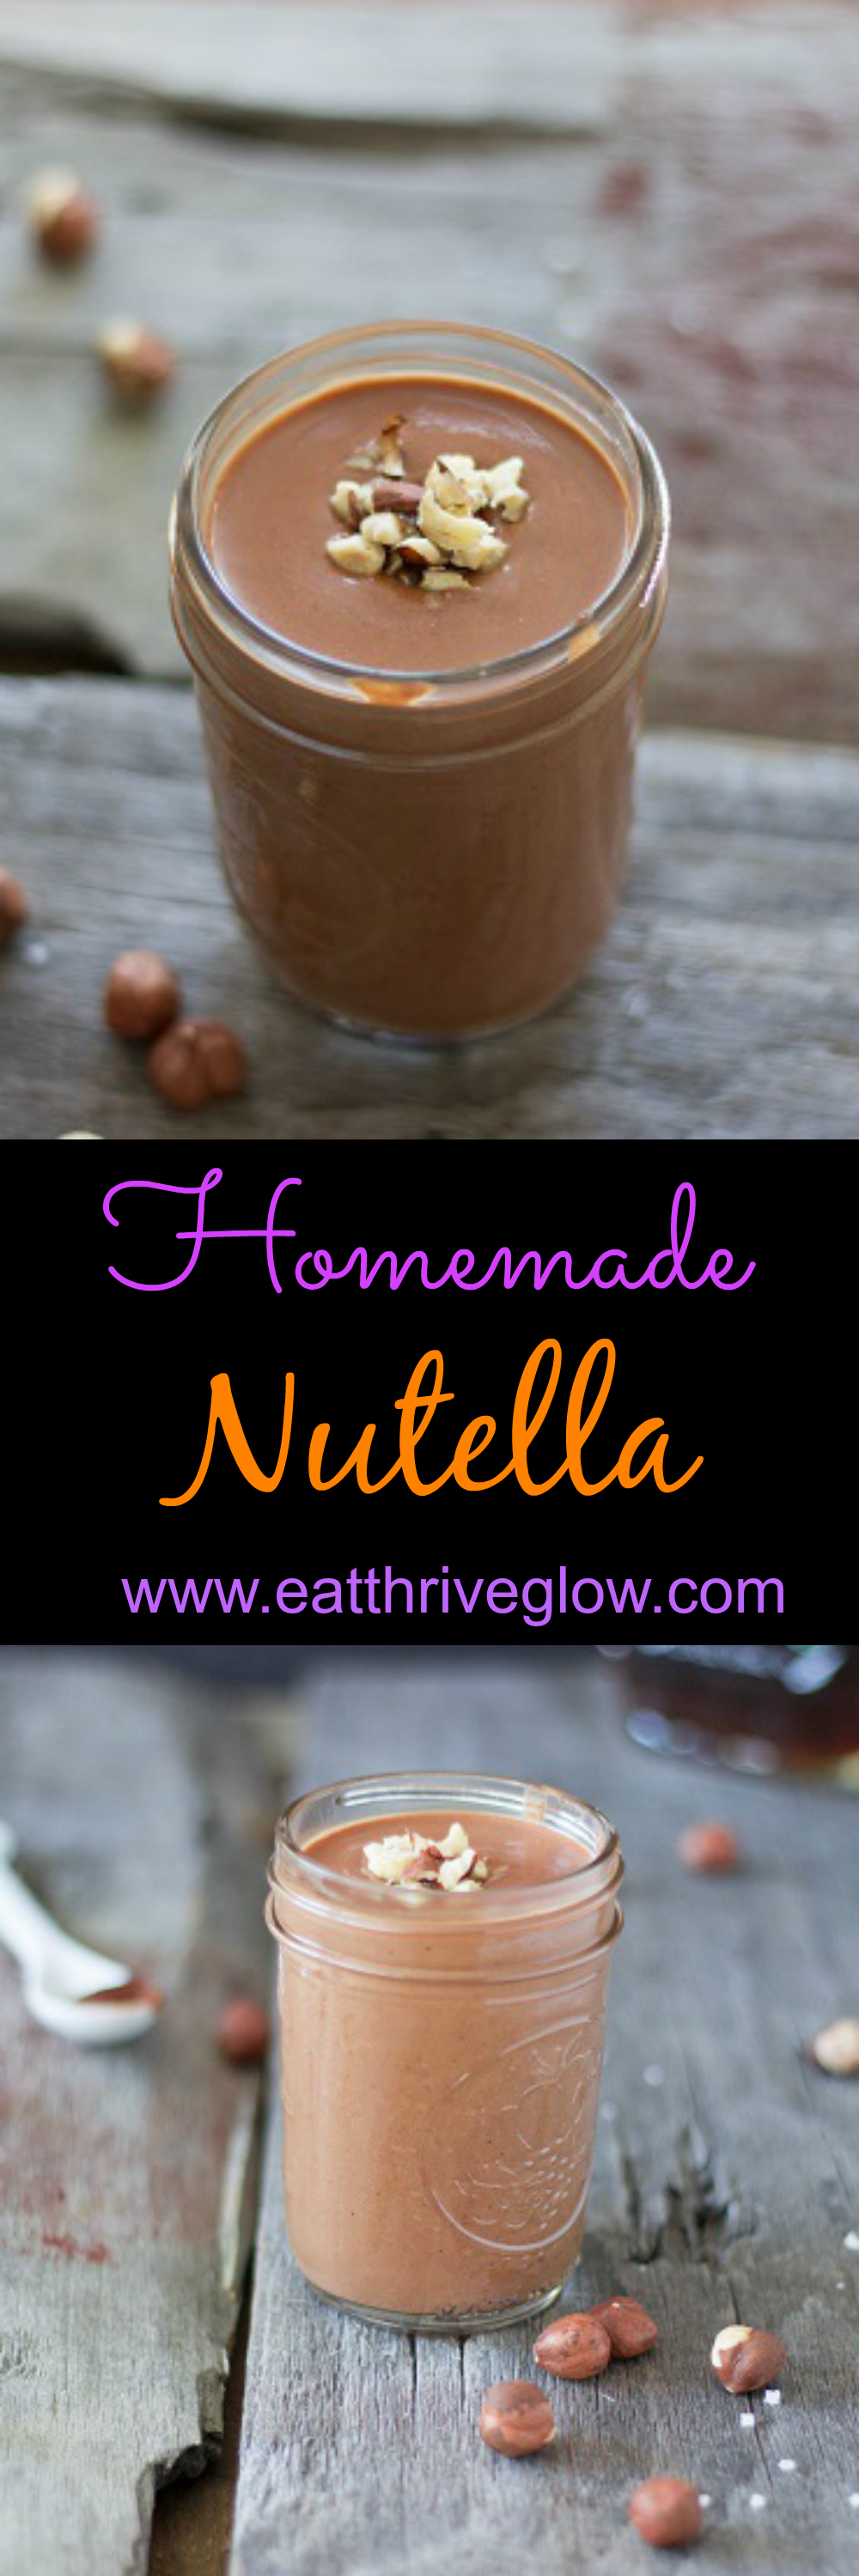 Homemade Nutella - Eat Thrive Glow